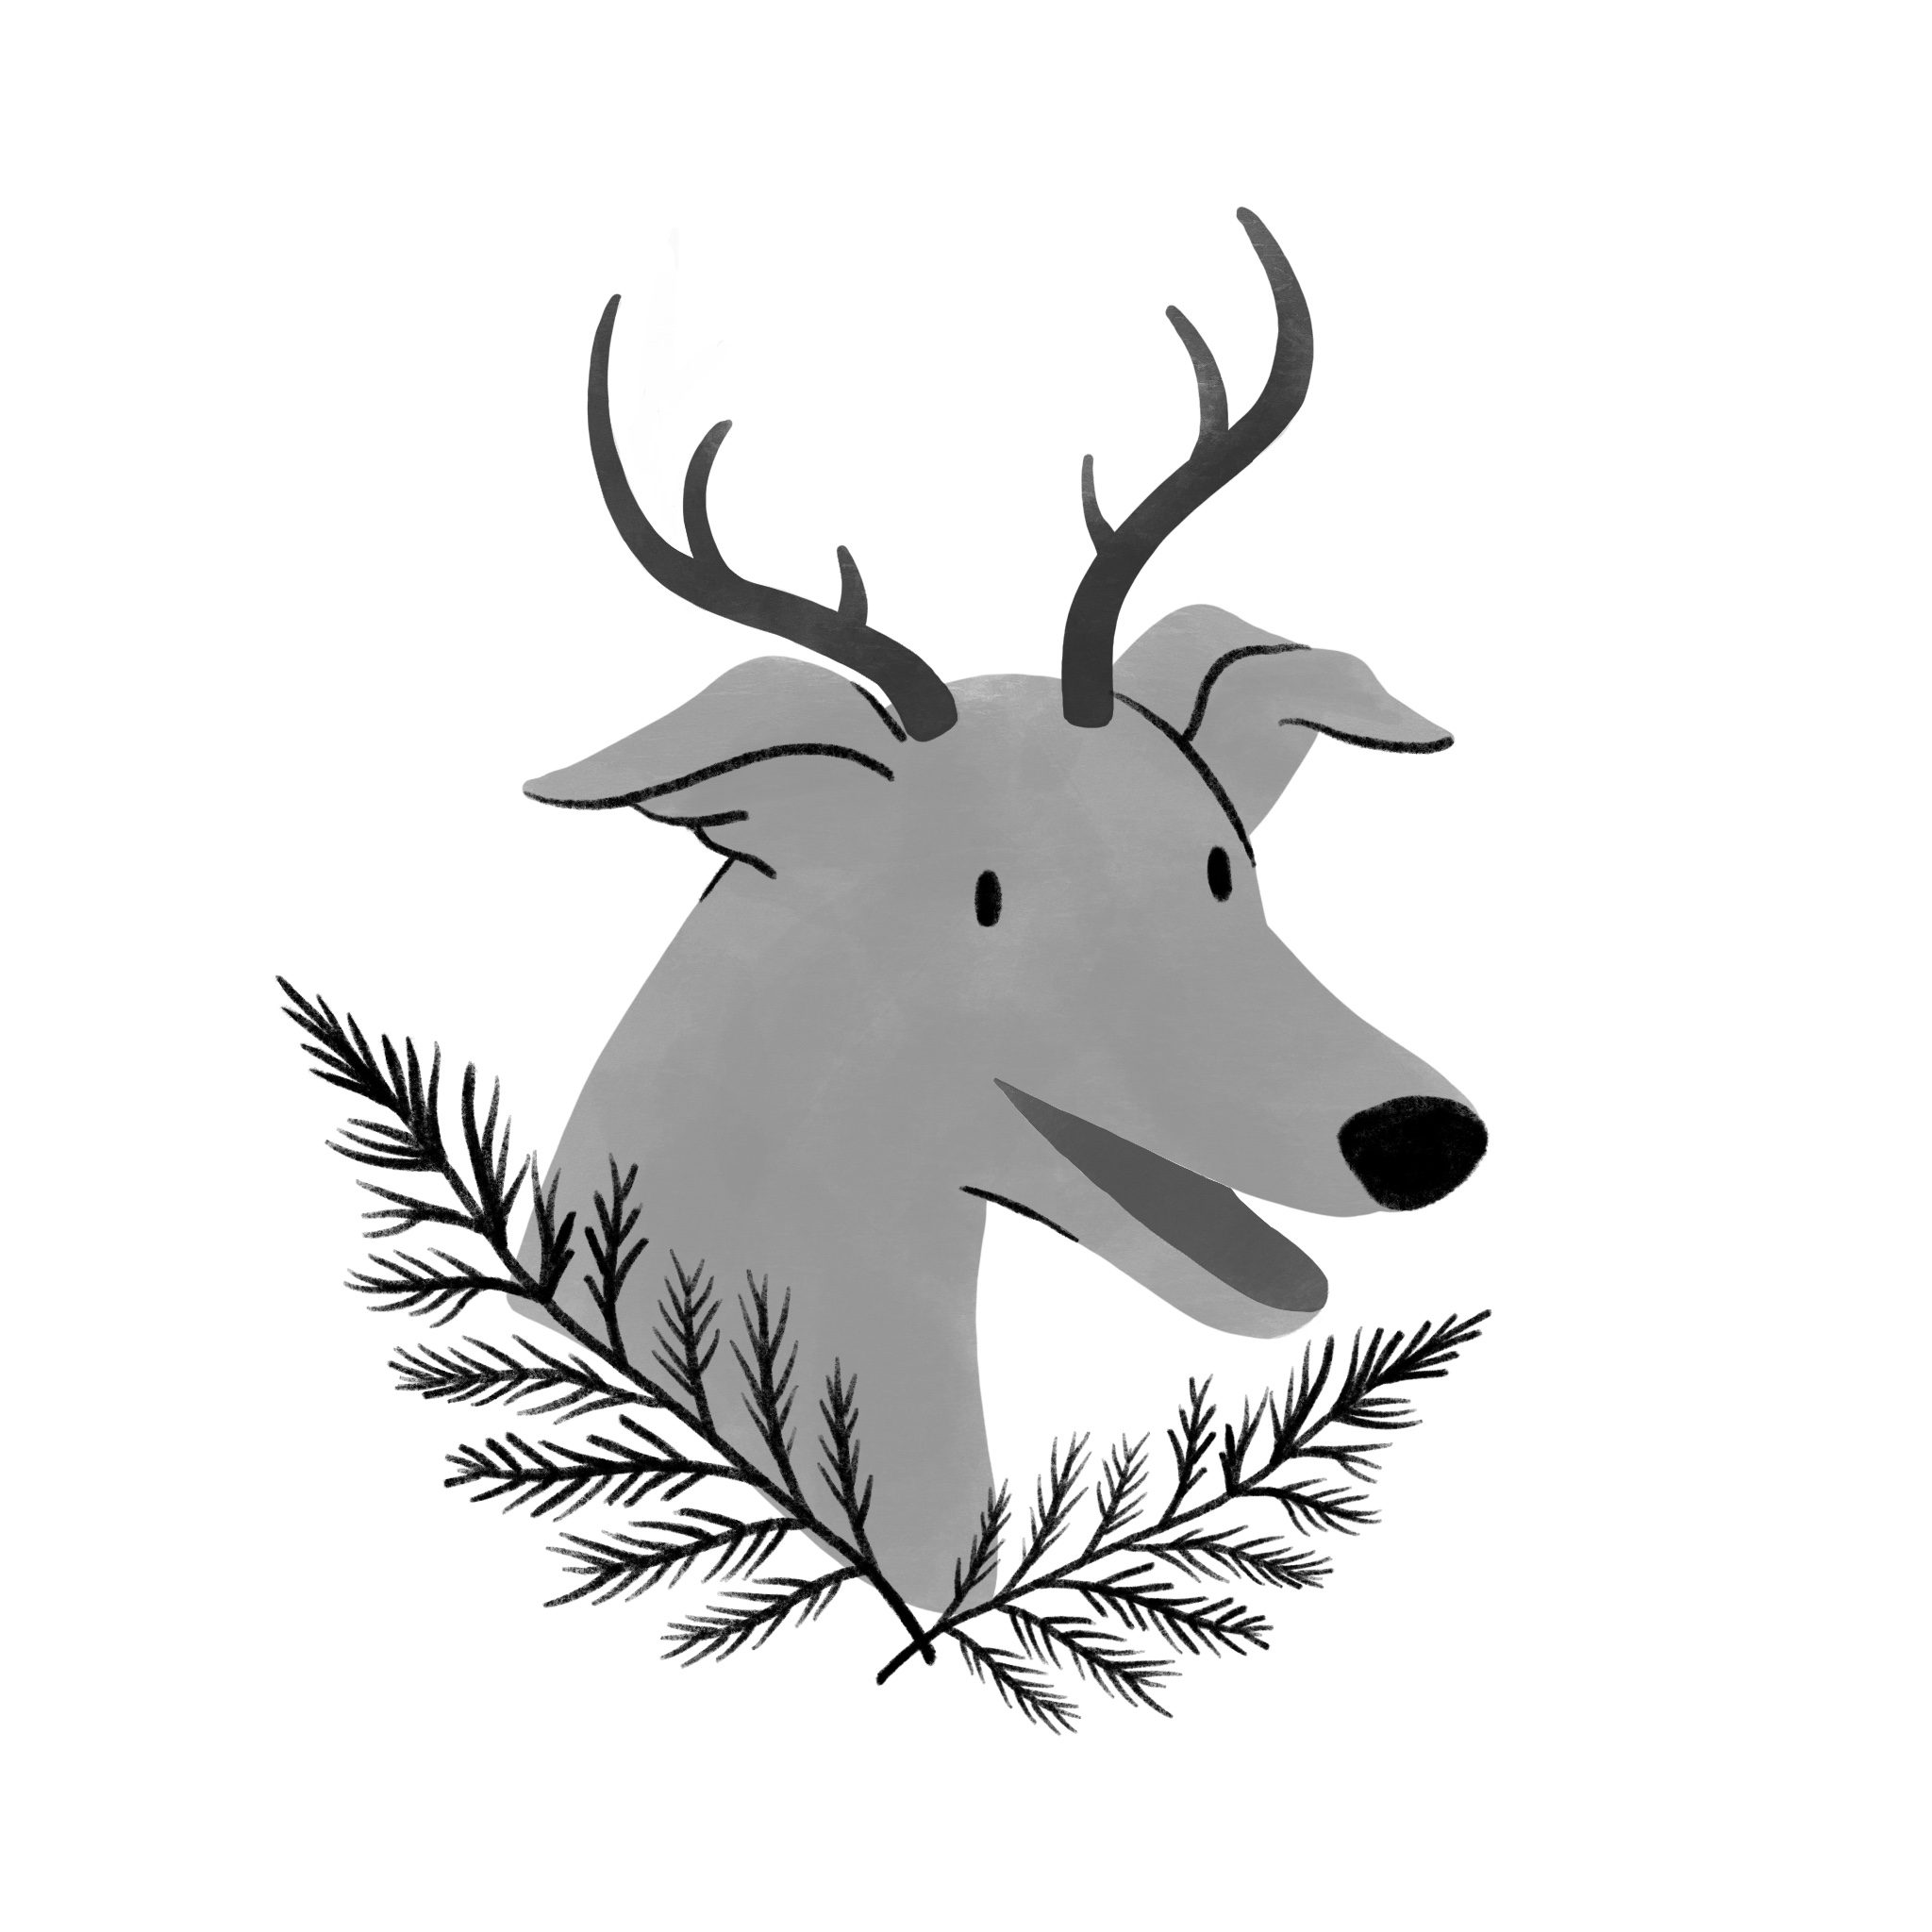 An illustration of a dog with antlers on, surrounded by pine boughs